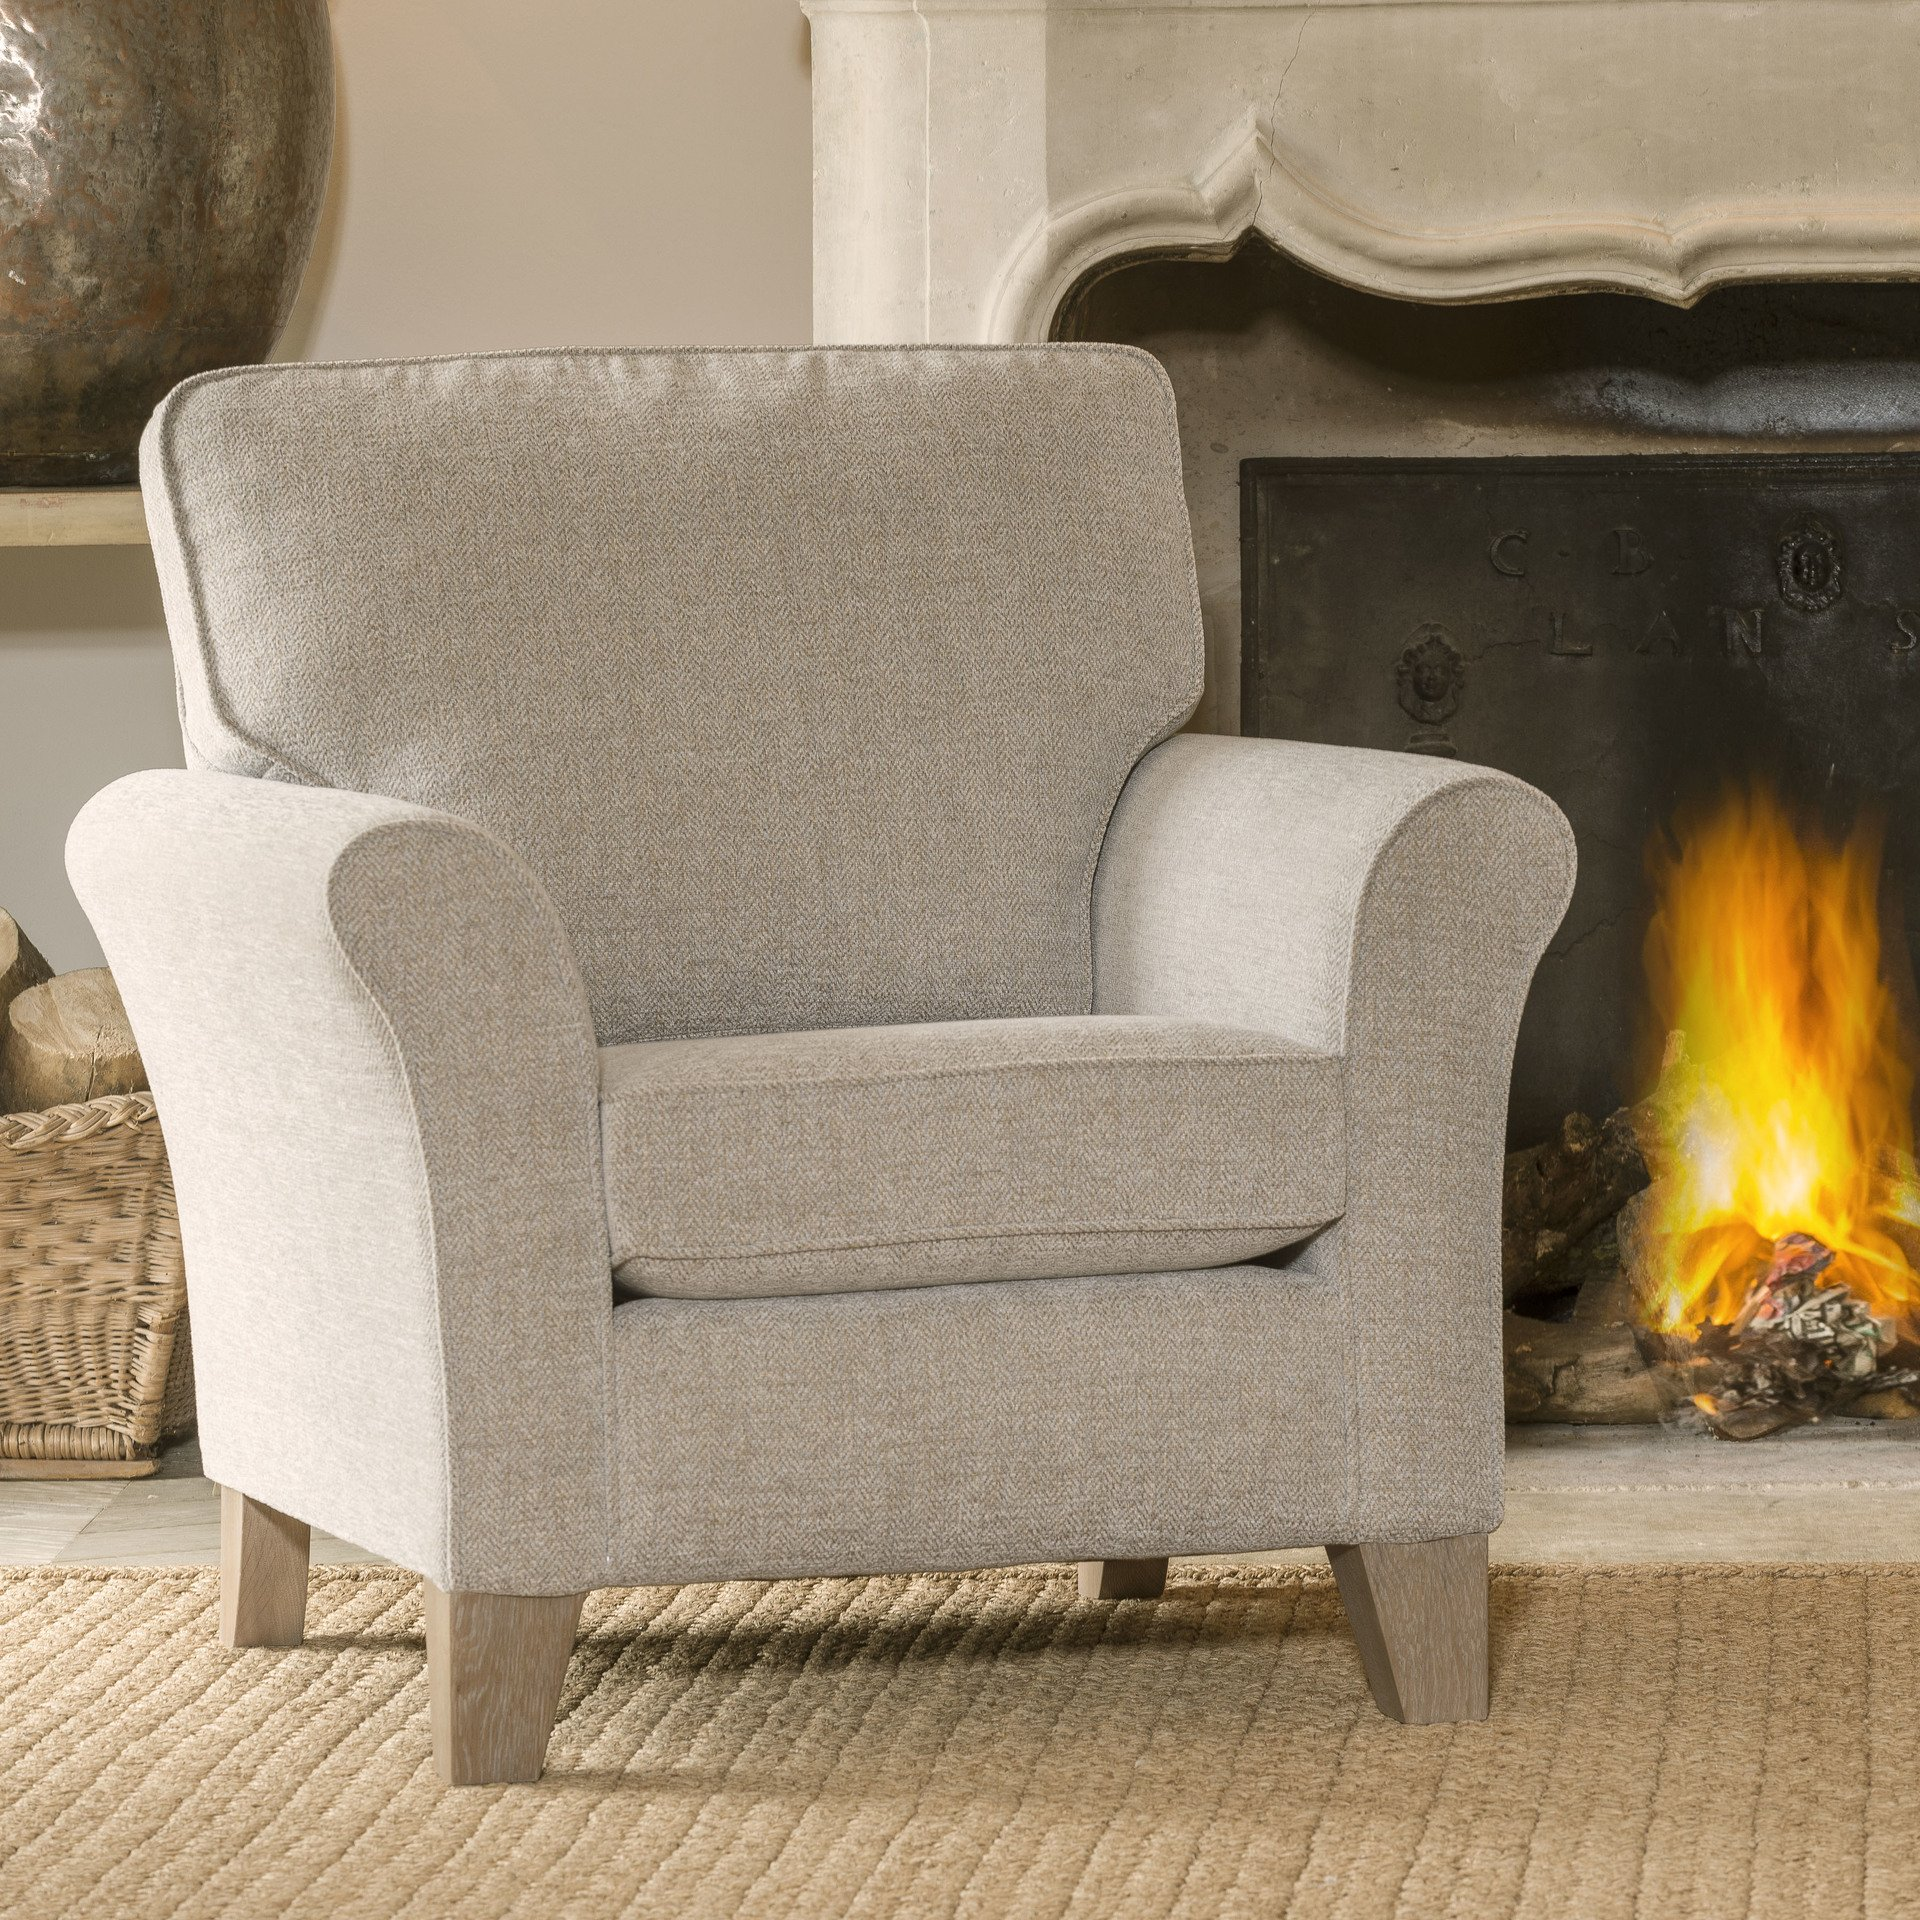 Chairs Amp Sofas In Fabric